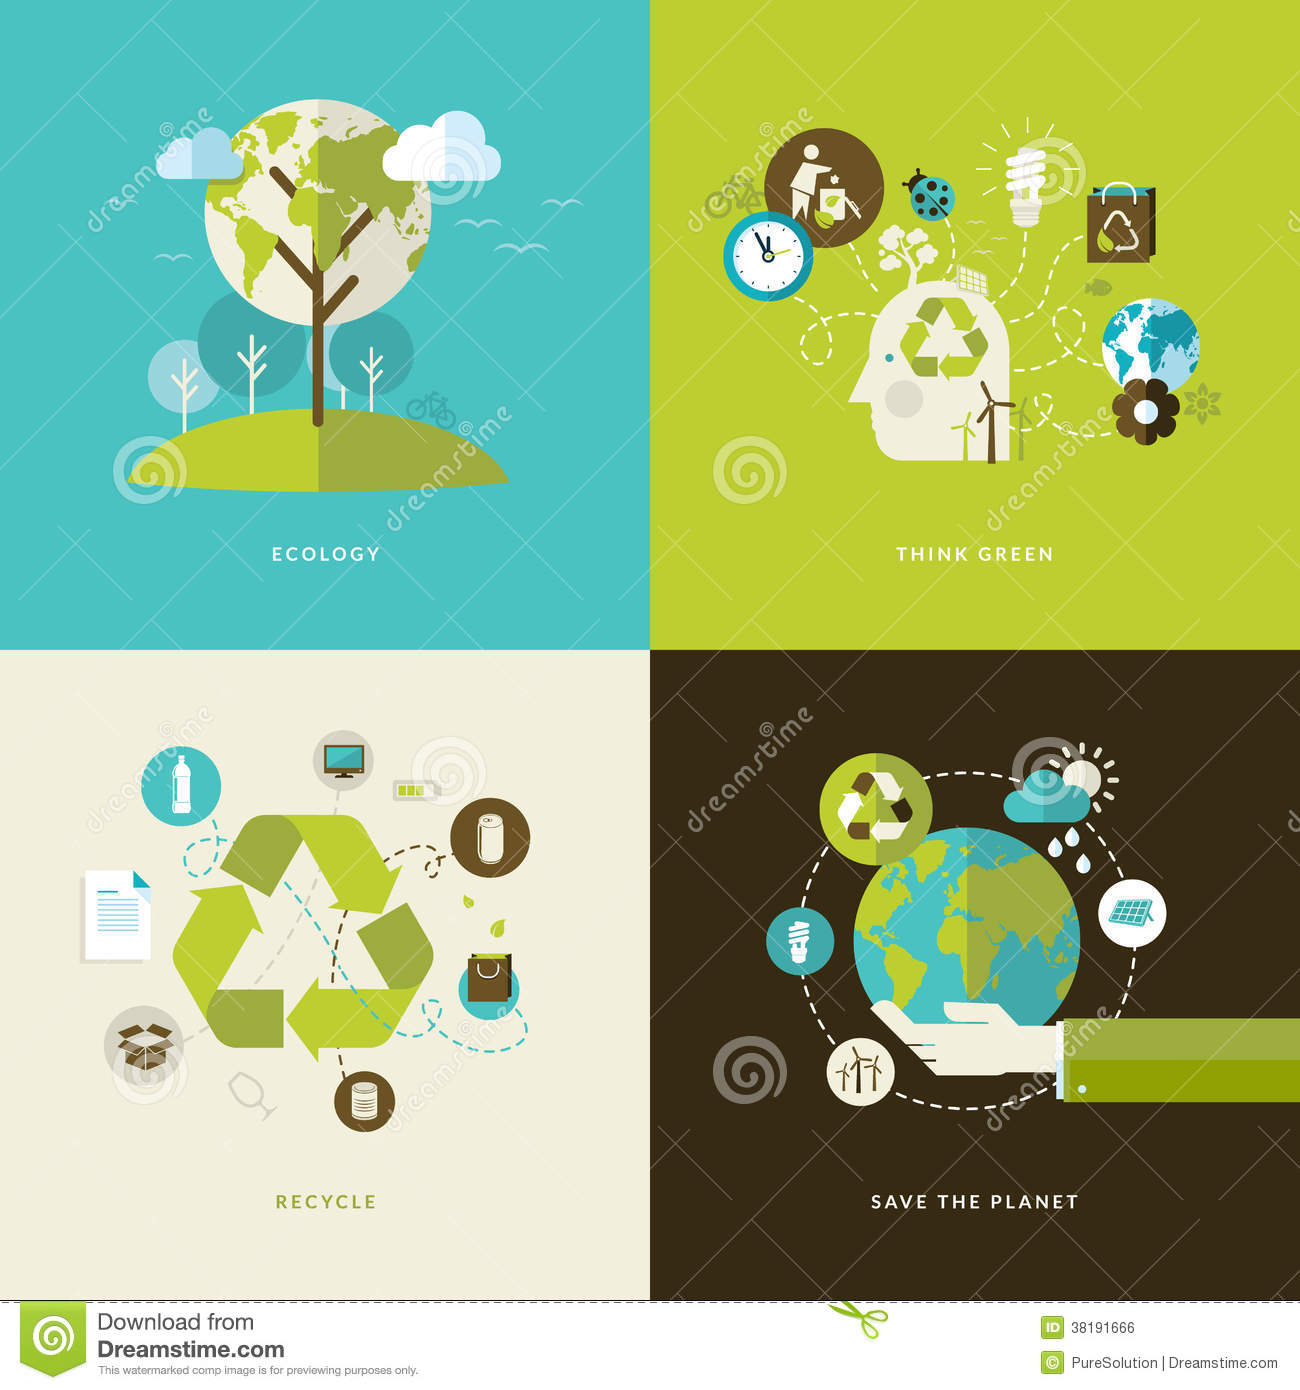 Set of flat design concept icons for recycling